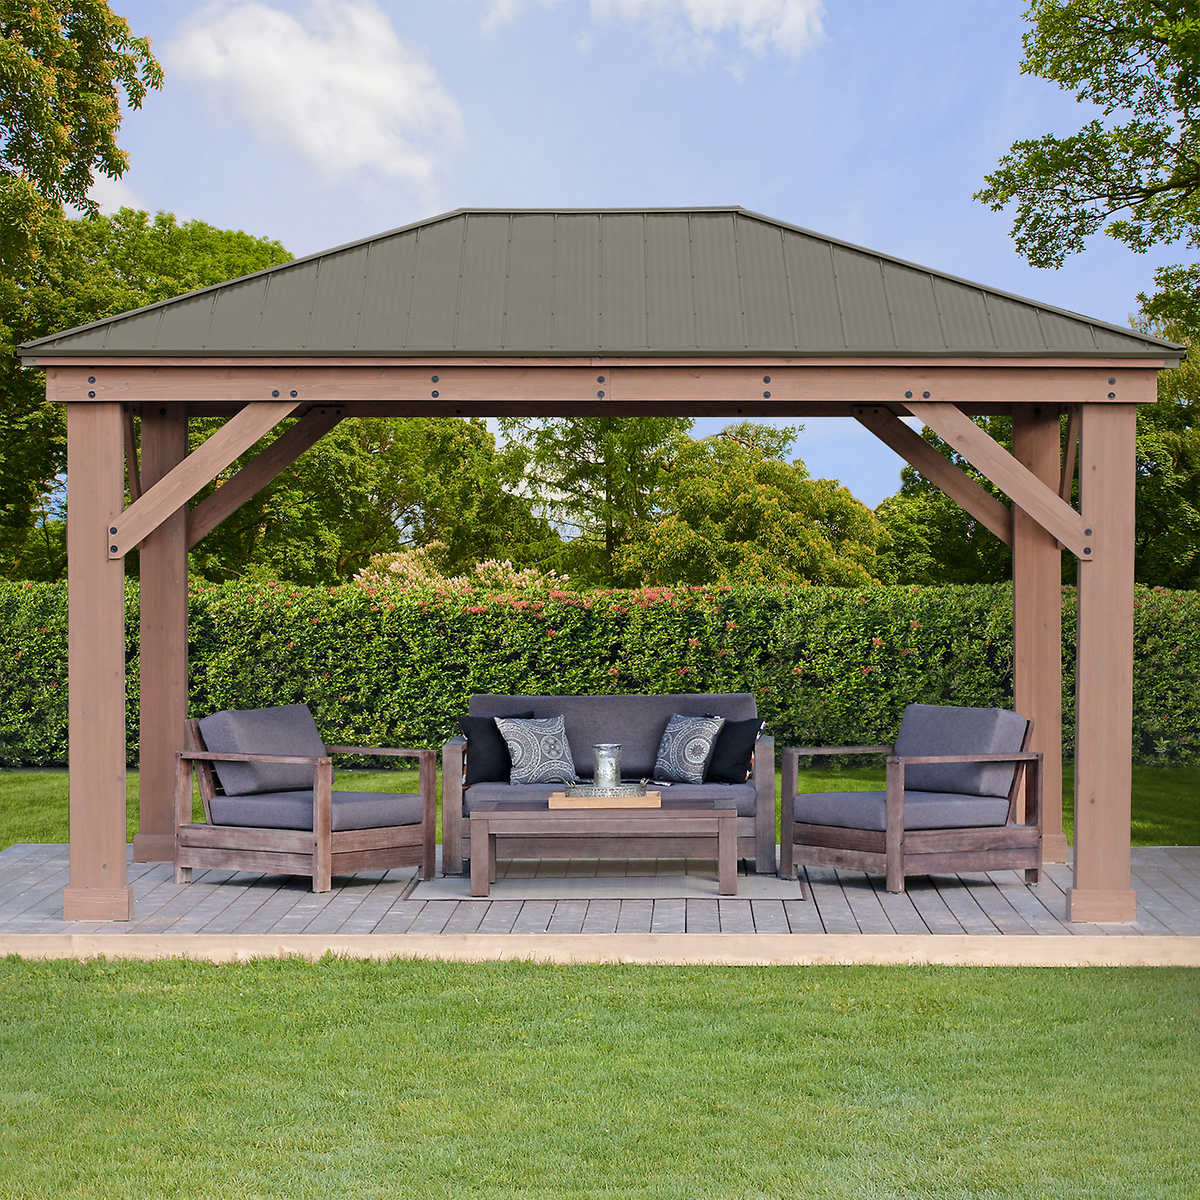 Perfect for Hot Tubs 12/' x 12 Square Gazebo with open sides Building Plans